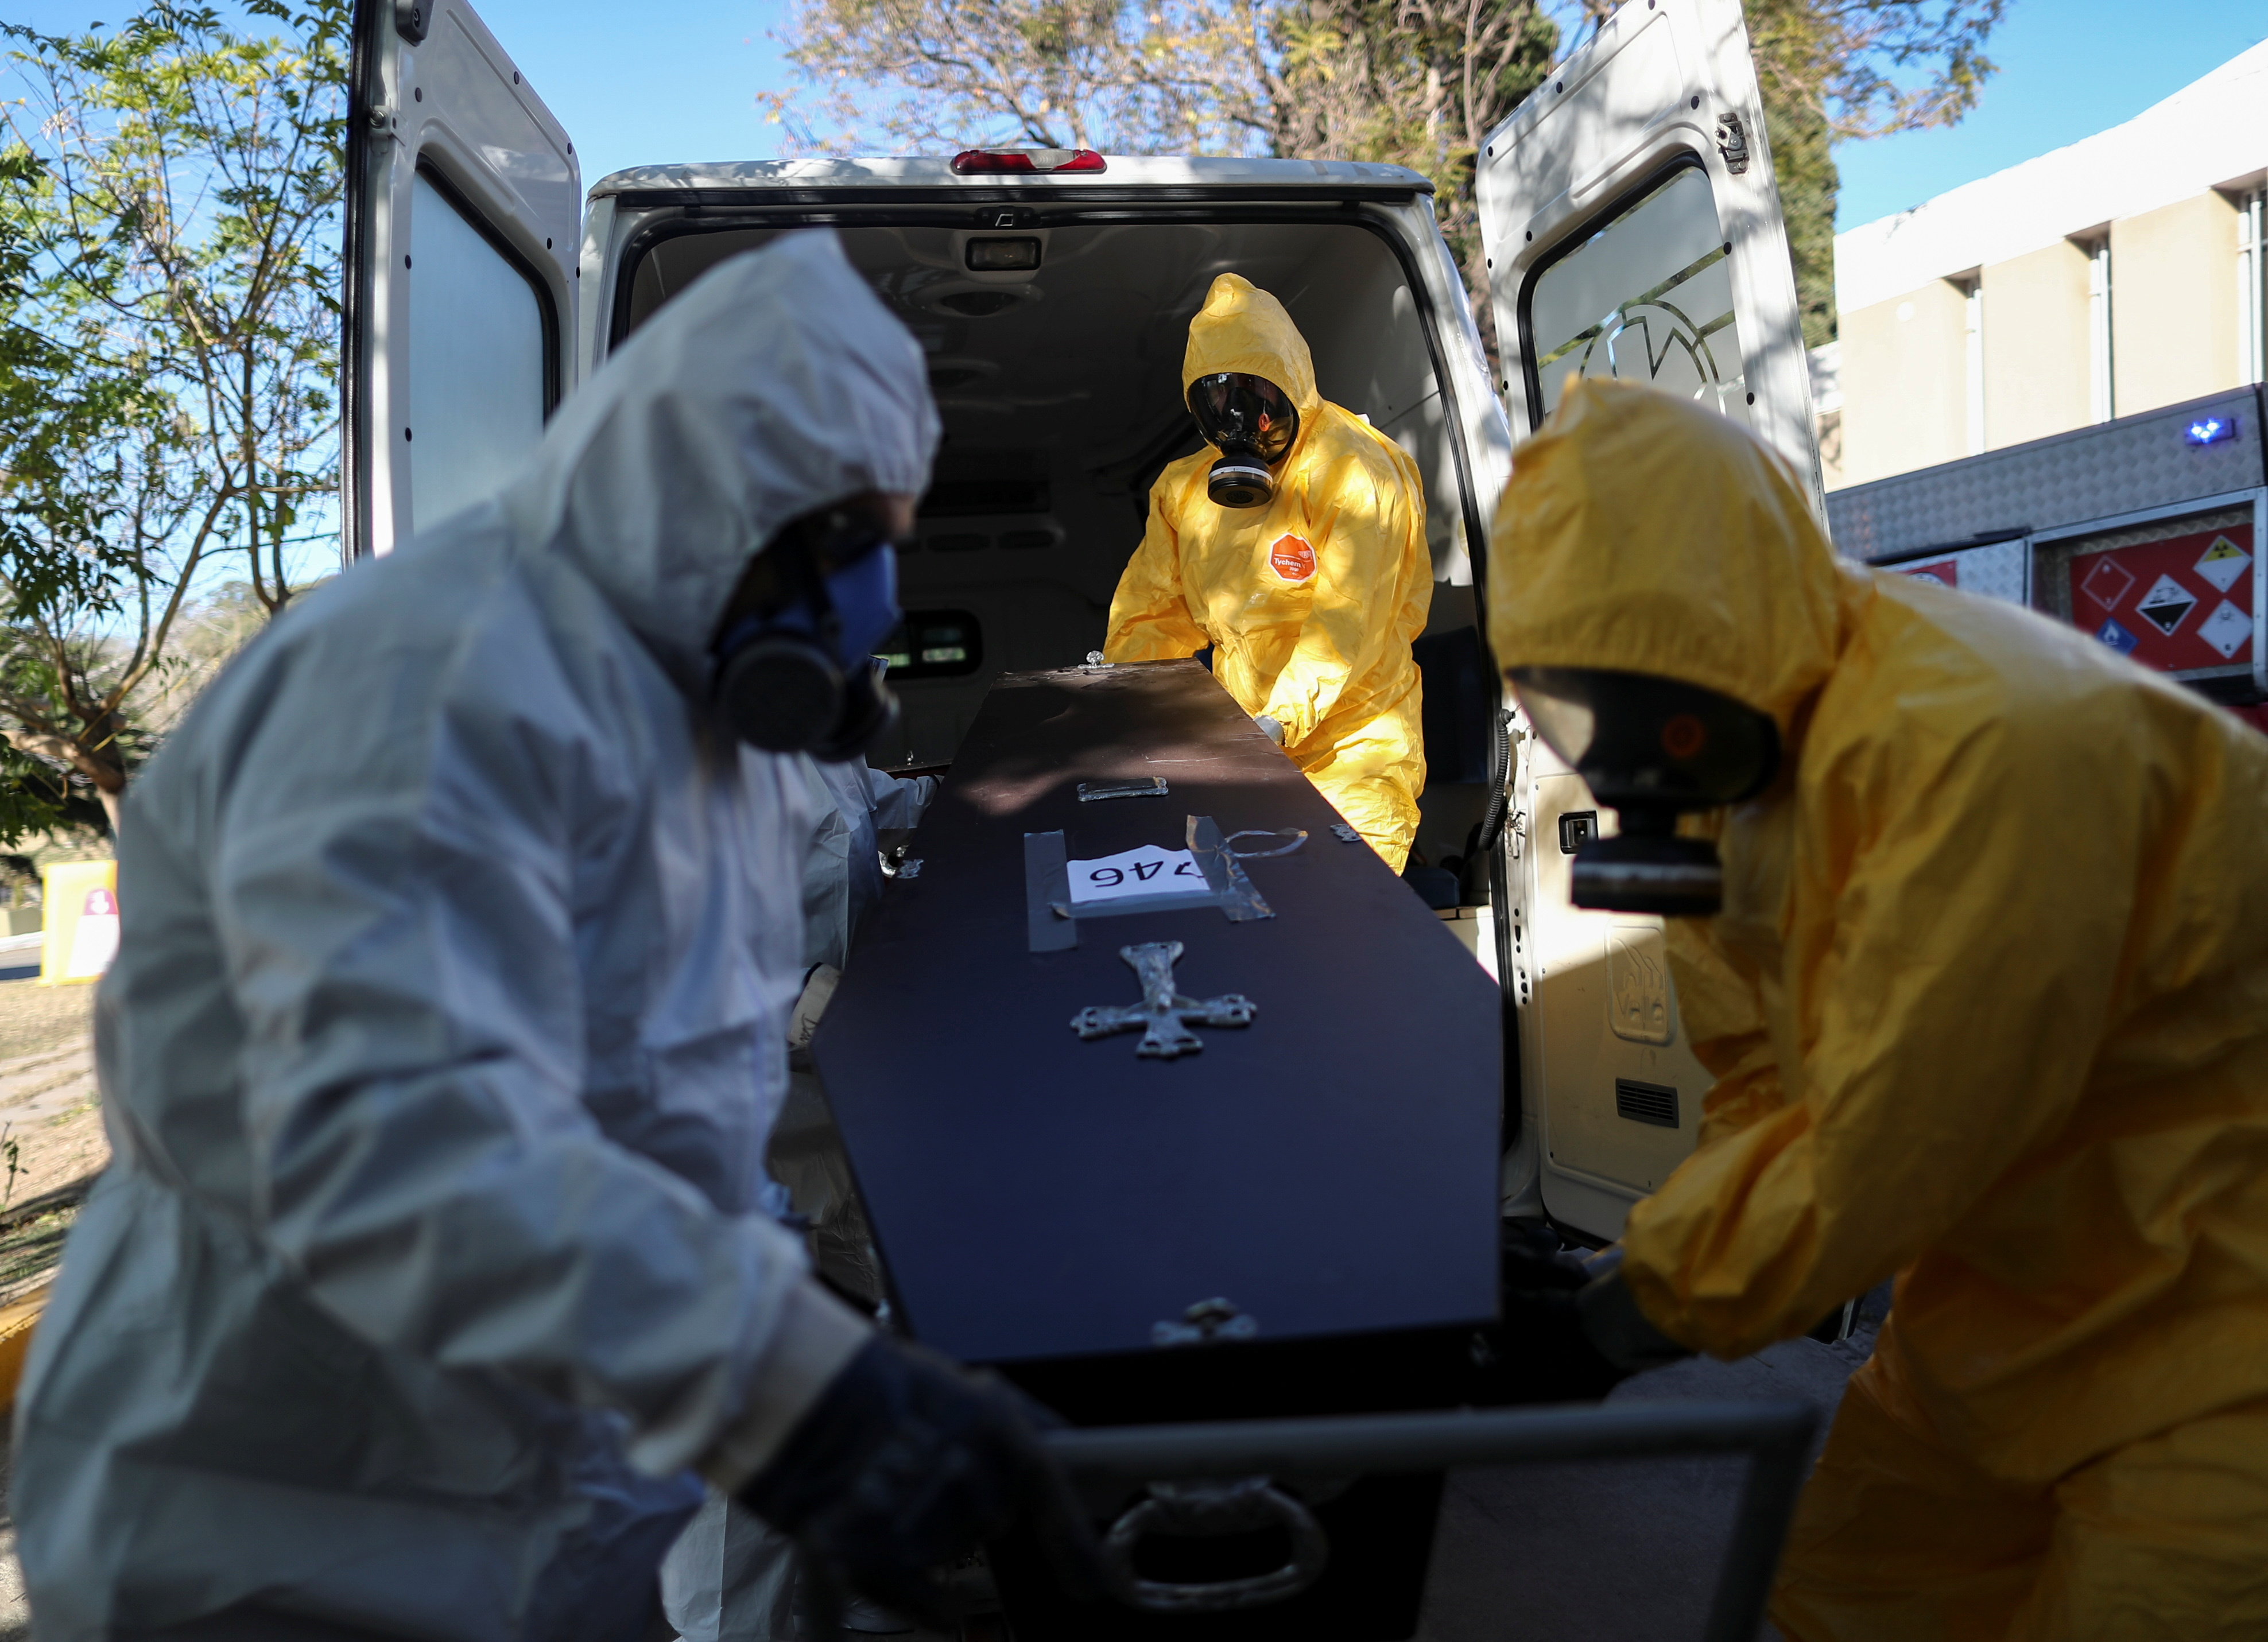 Members of the Department of High Risk Units (DUAR) unload a coffin of a person who died from the coronavirus disease (COVID-19) from an ambulance at the San Vicente cemetery, in Cordoba, Argentina, July 10, 2021. REUTERS/Agustin Marcarian